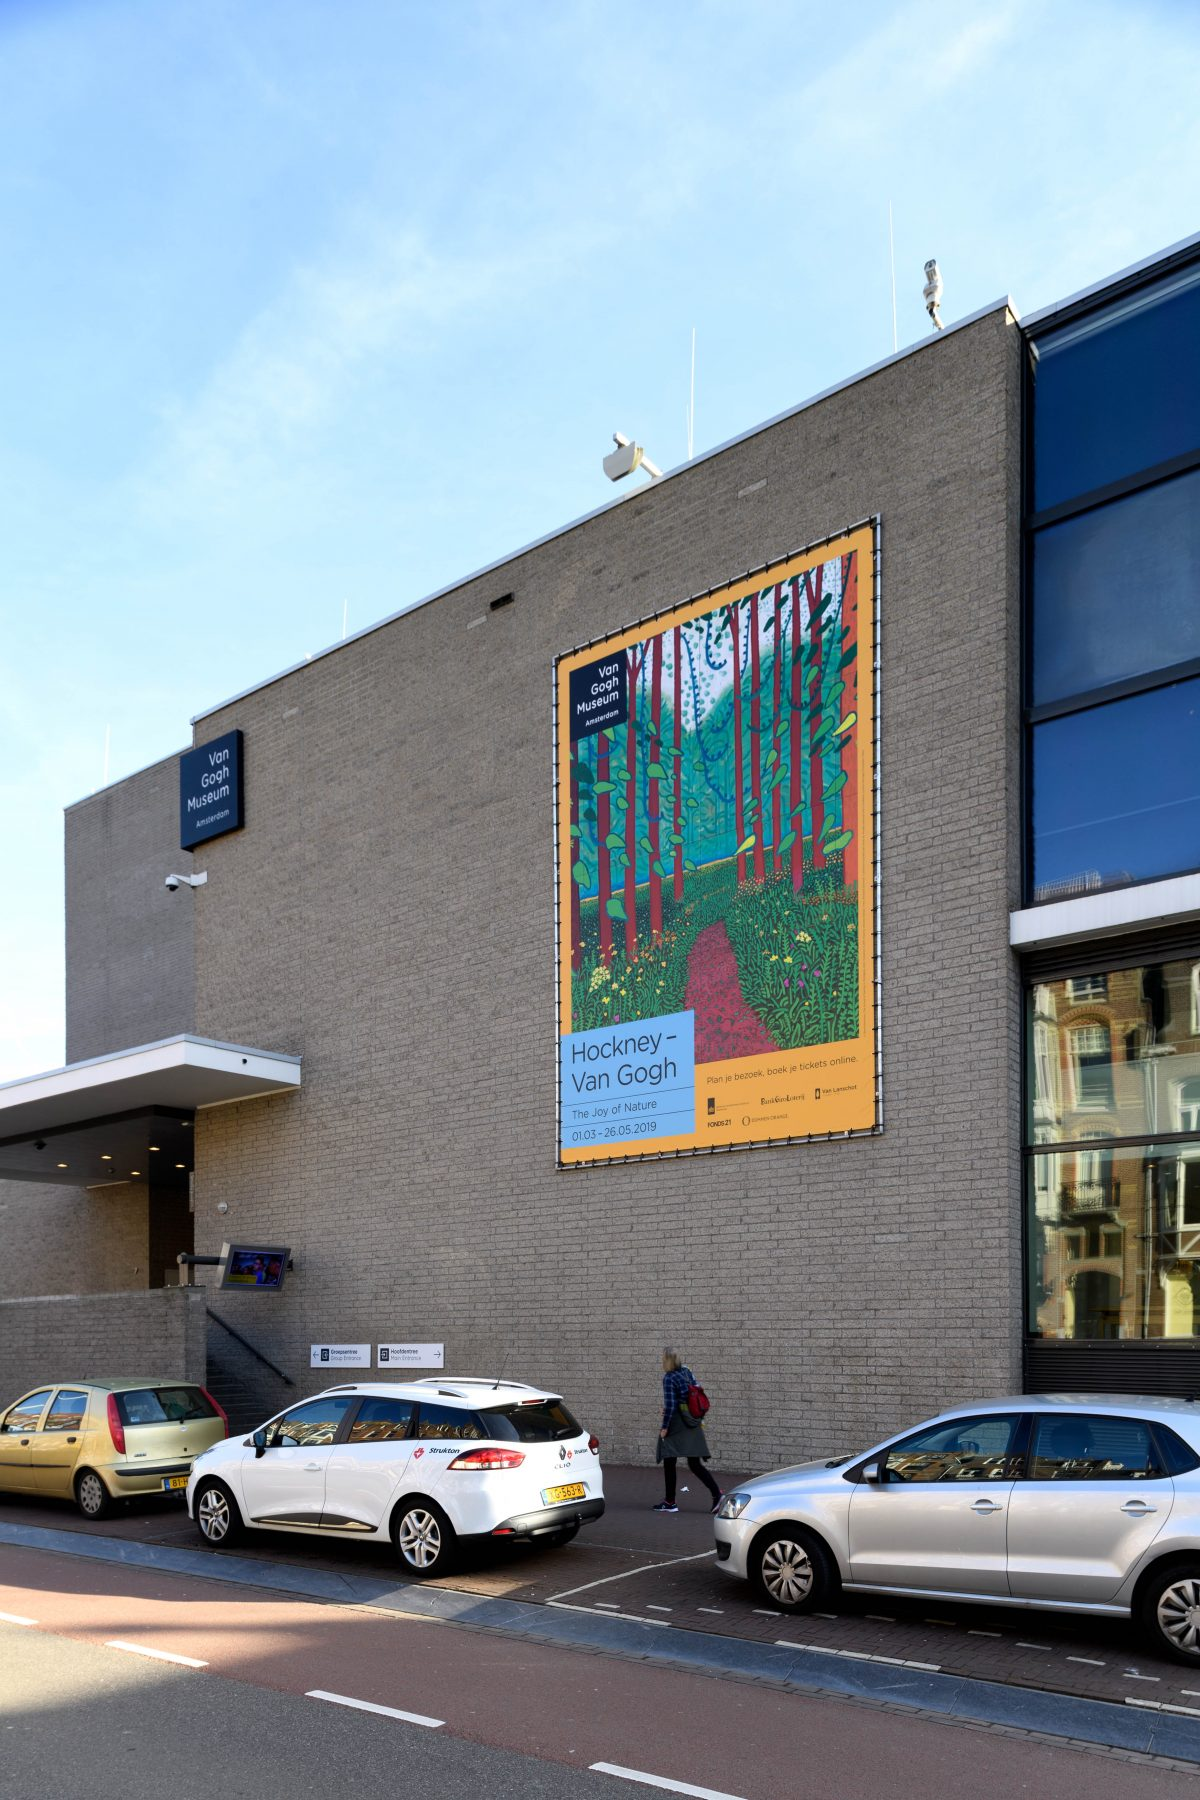 Van Gogh Museum | 'Hockney – Van Gogh: The Joy of Nature', Amsterdam